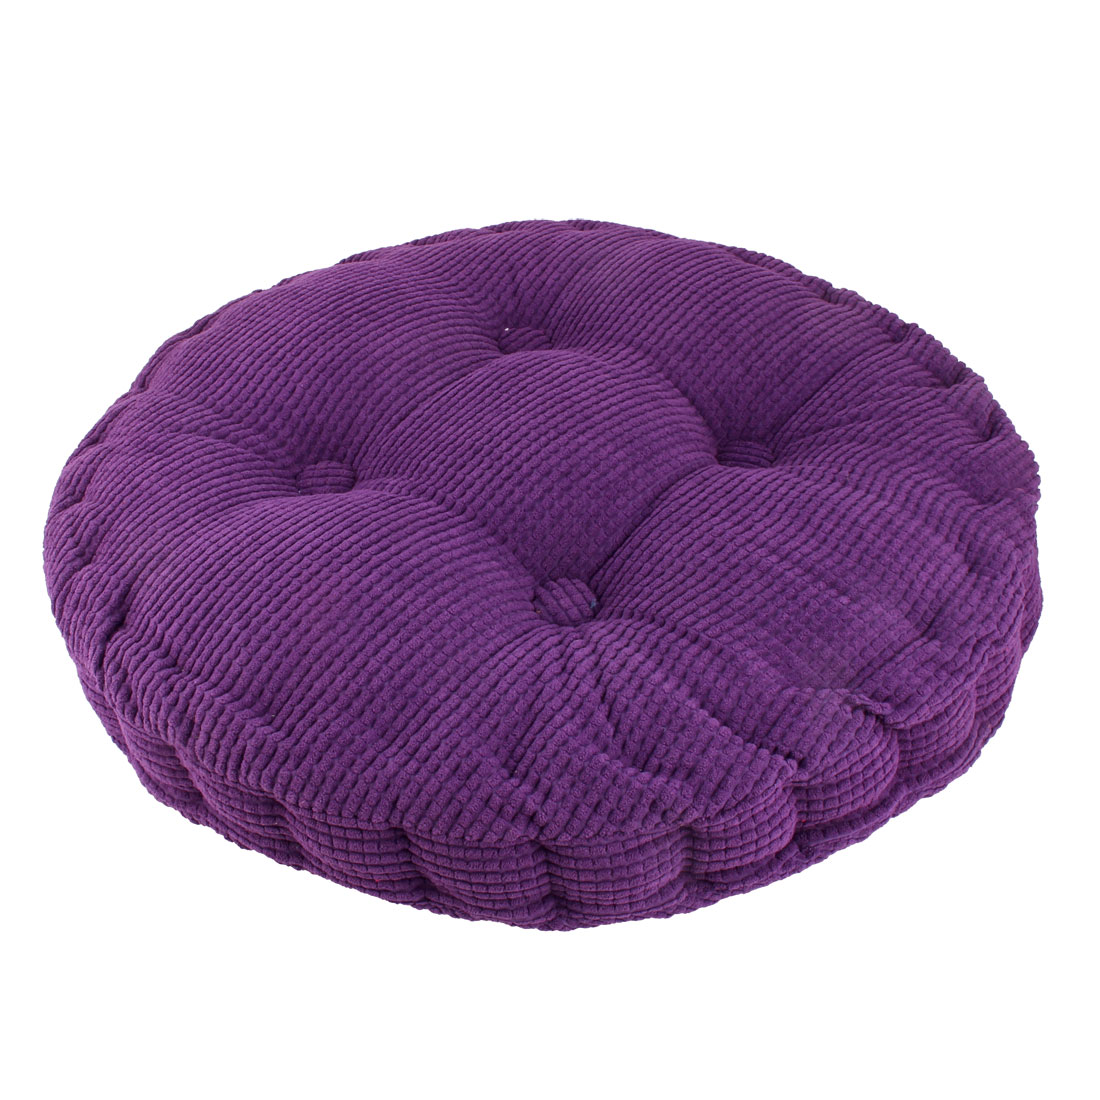 Home Office Corduroy Round Shaped Sofa Floor Chair Seat Cushion Pad Blue - image 1 of 4